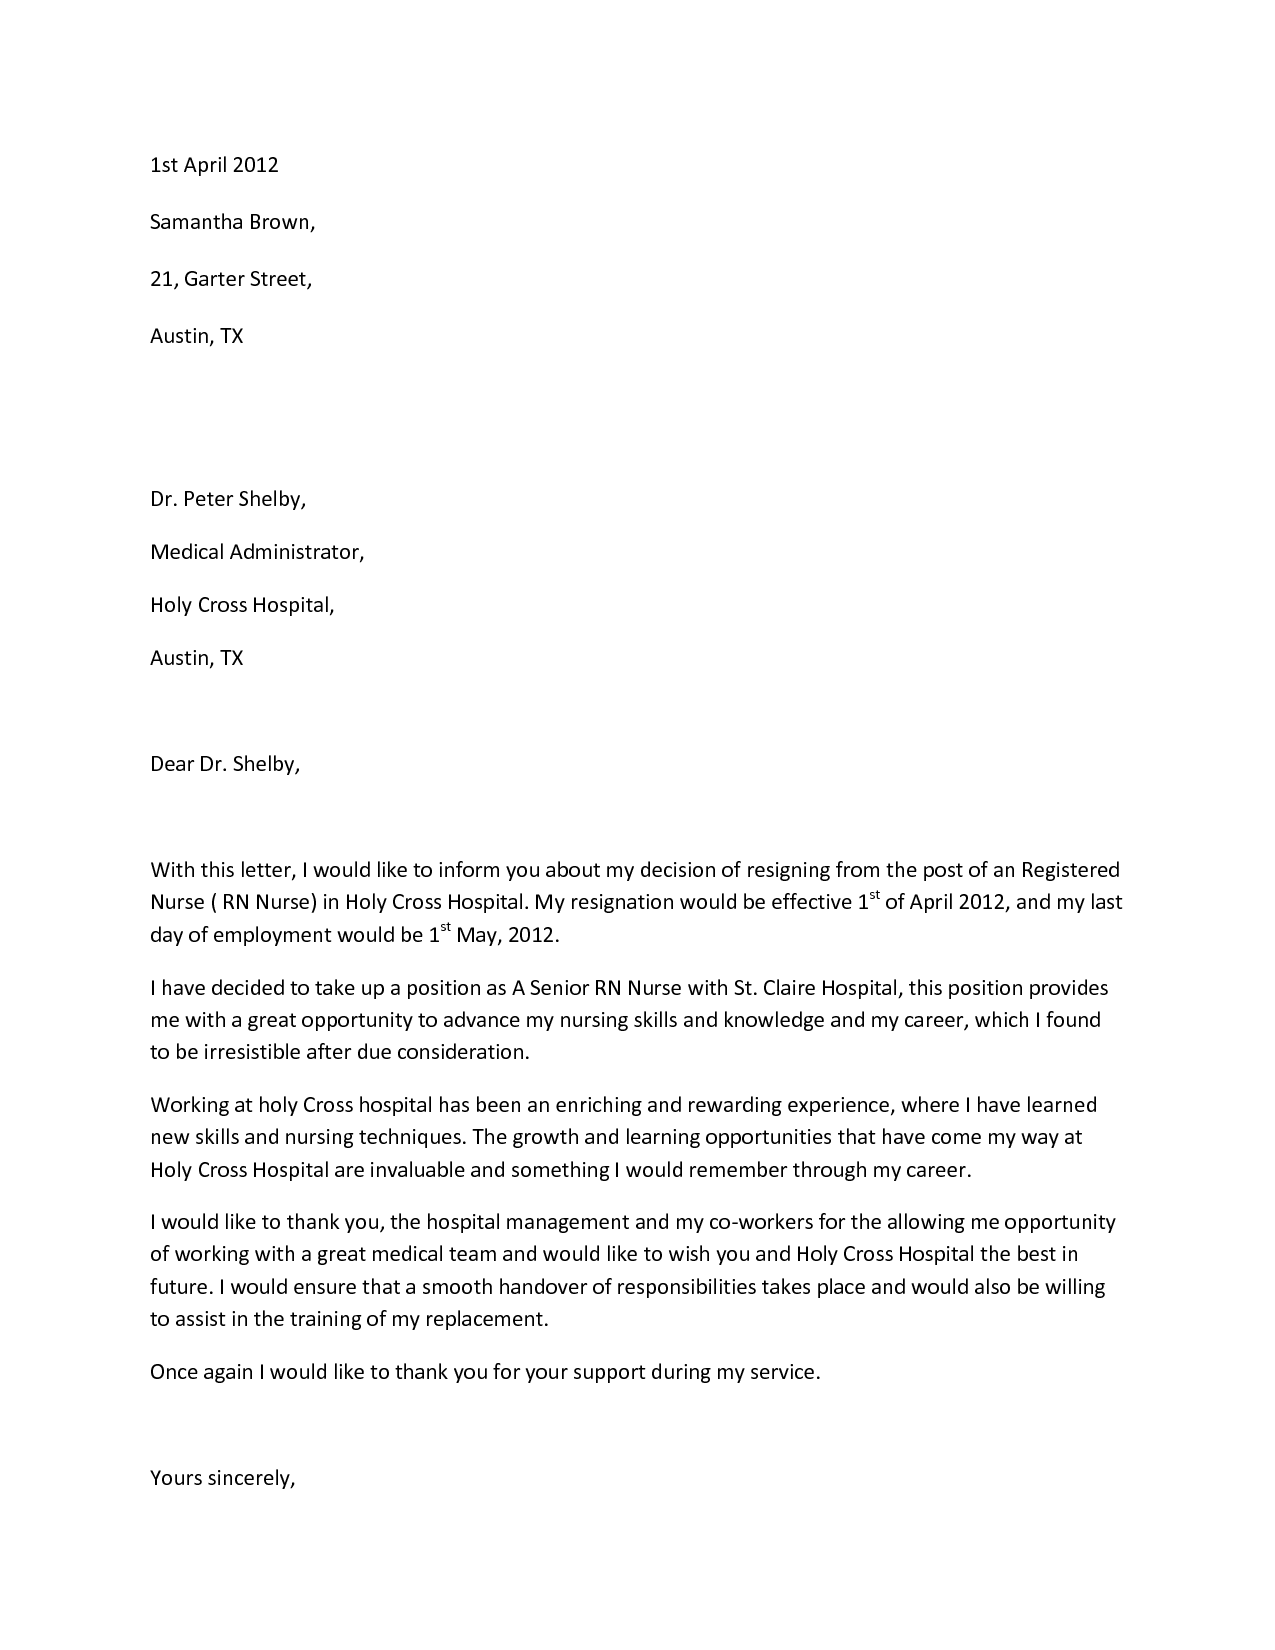 Sample resignation letterwriting a letter of resignation for Future opportunities cover letter